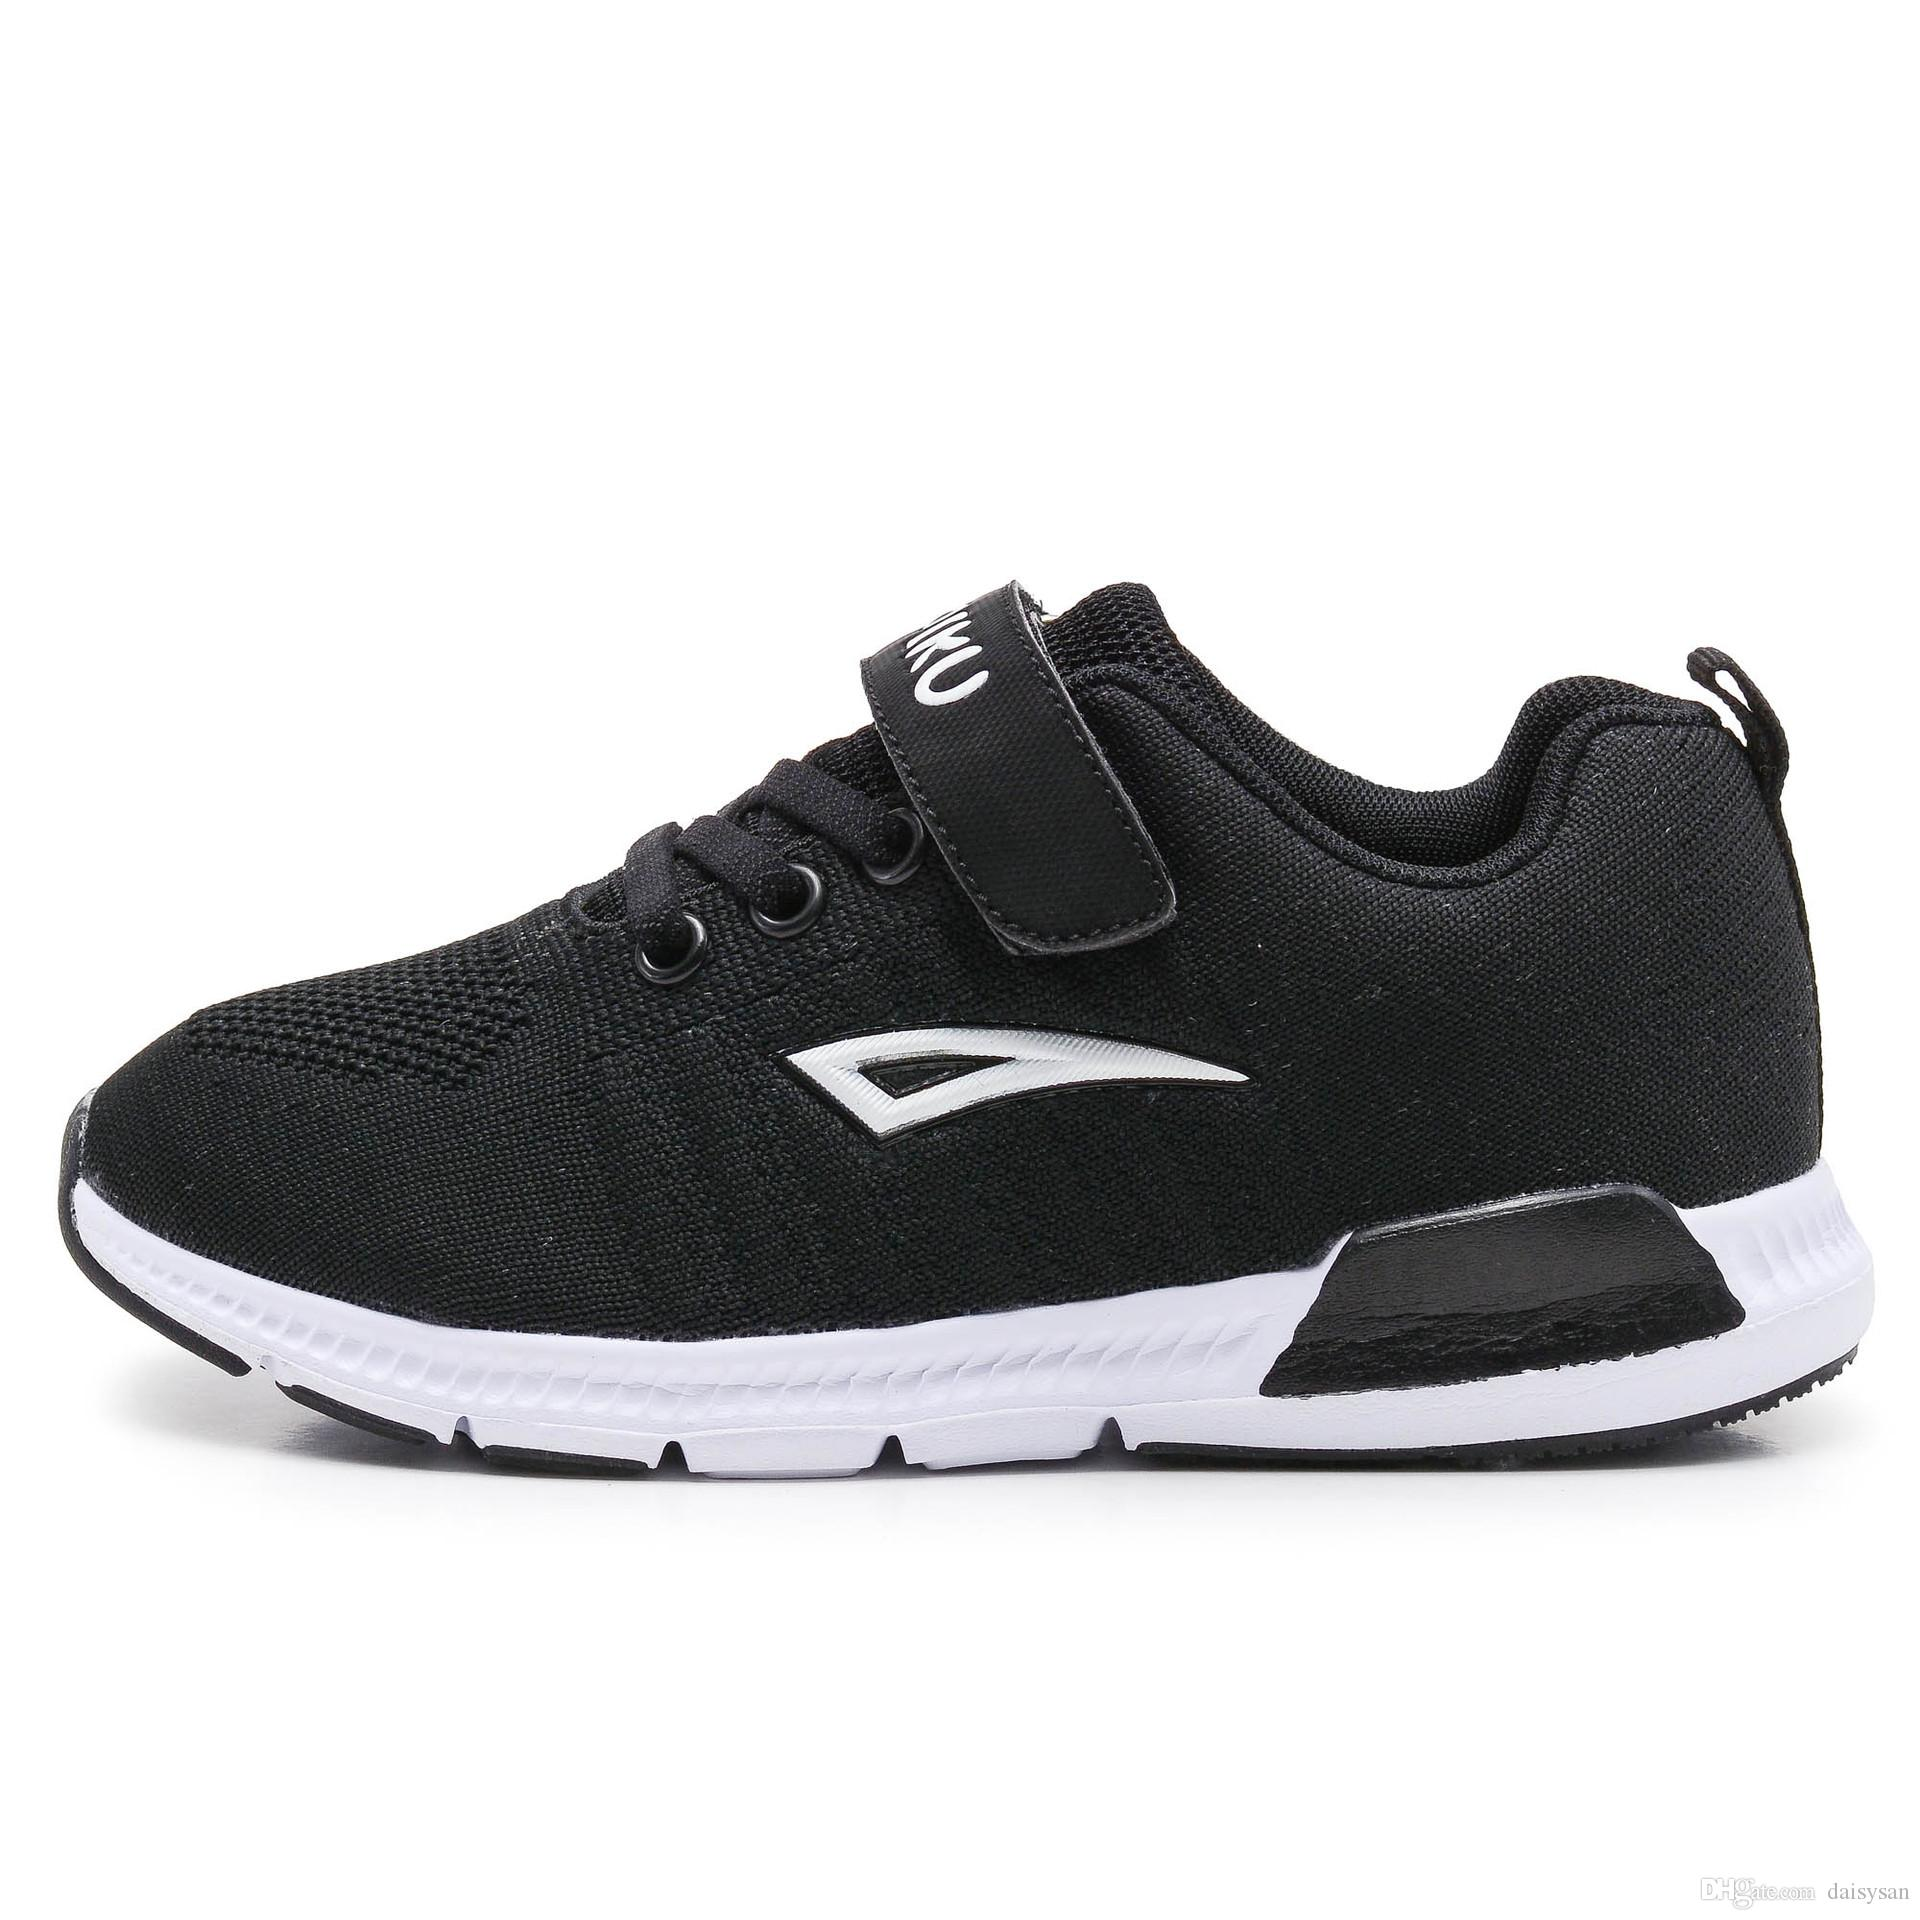 41154bb3c 2018 New Children Shoes Boys Sneakers Girls Sport Shoes Size 28 38 Child  Leisure Trainers Casual Breathable Kids Running Shoes Childrens Running  Trainers ...